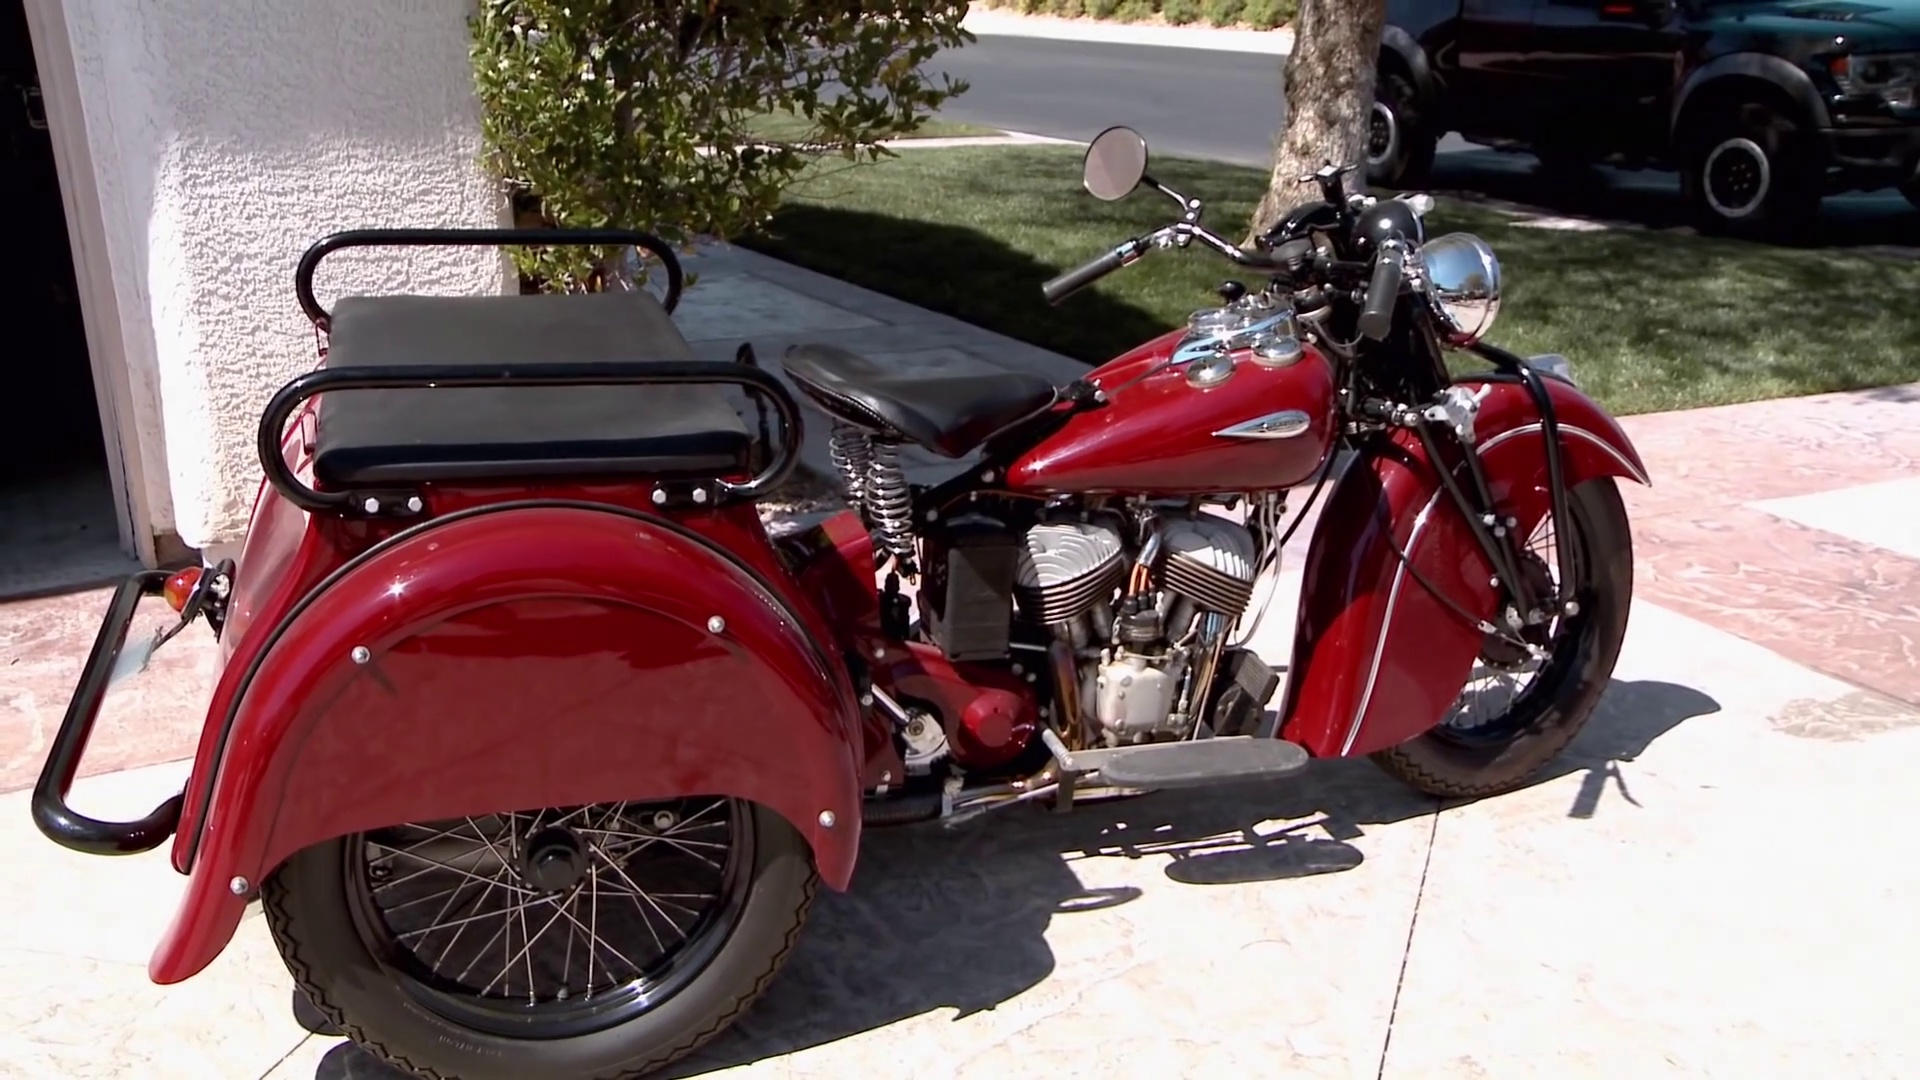 Best of Pawn Stars Collection of Restored Indian Motorcycles  History